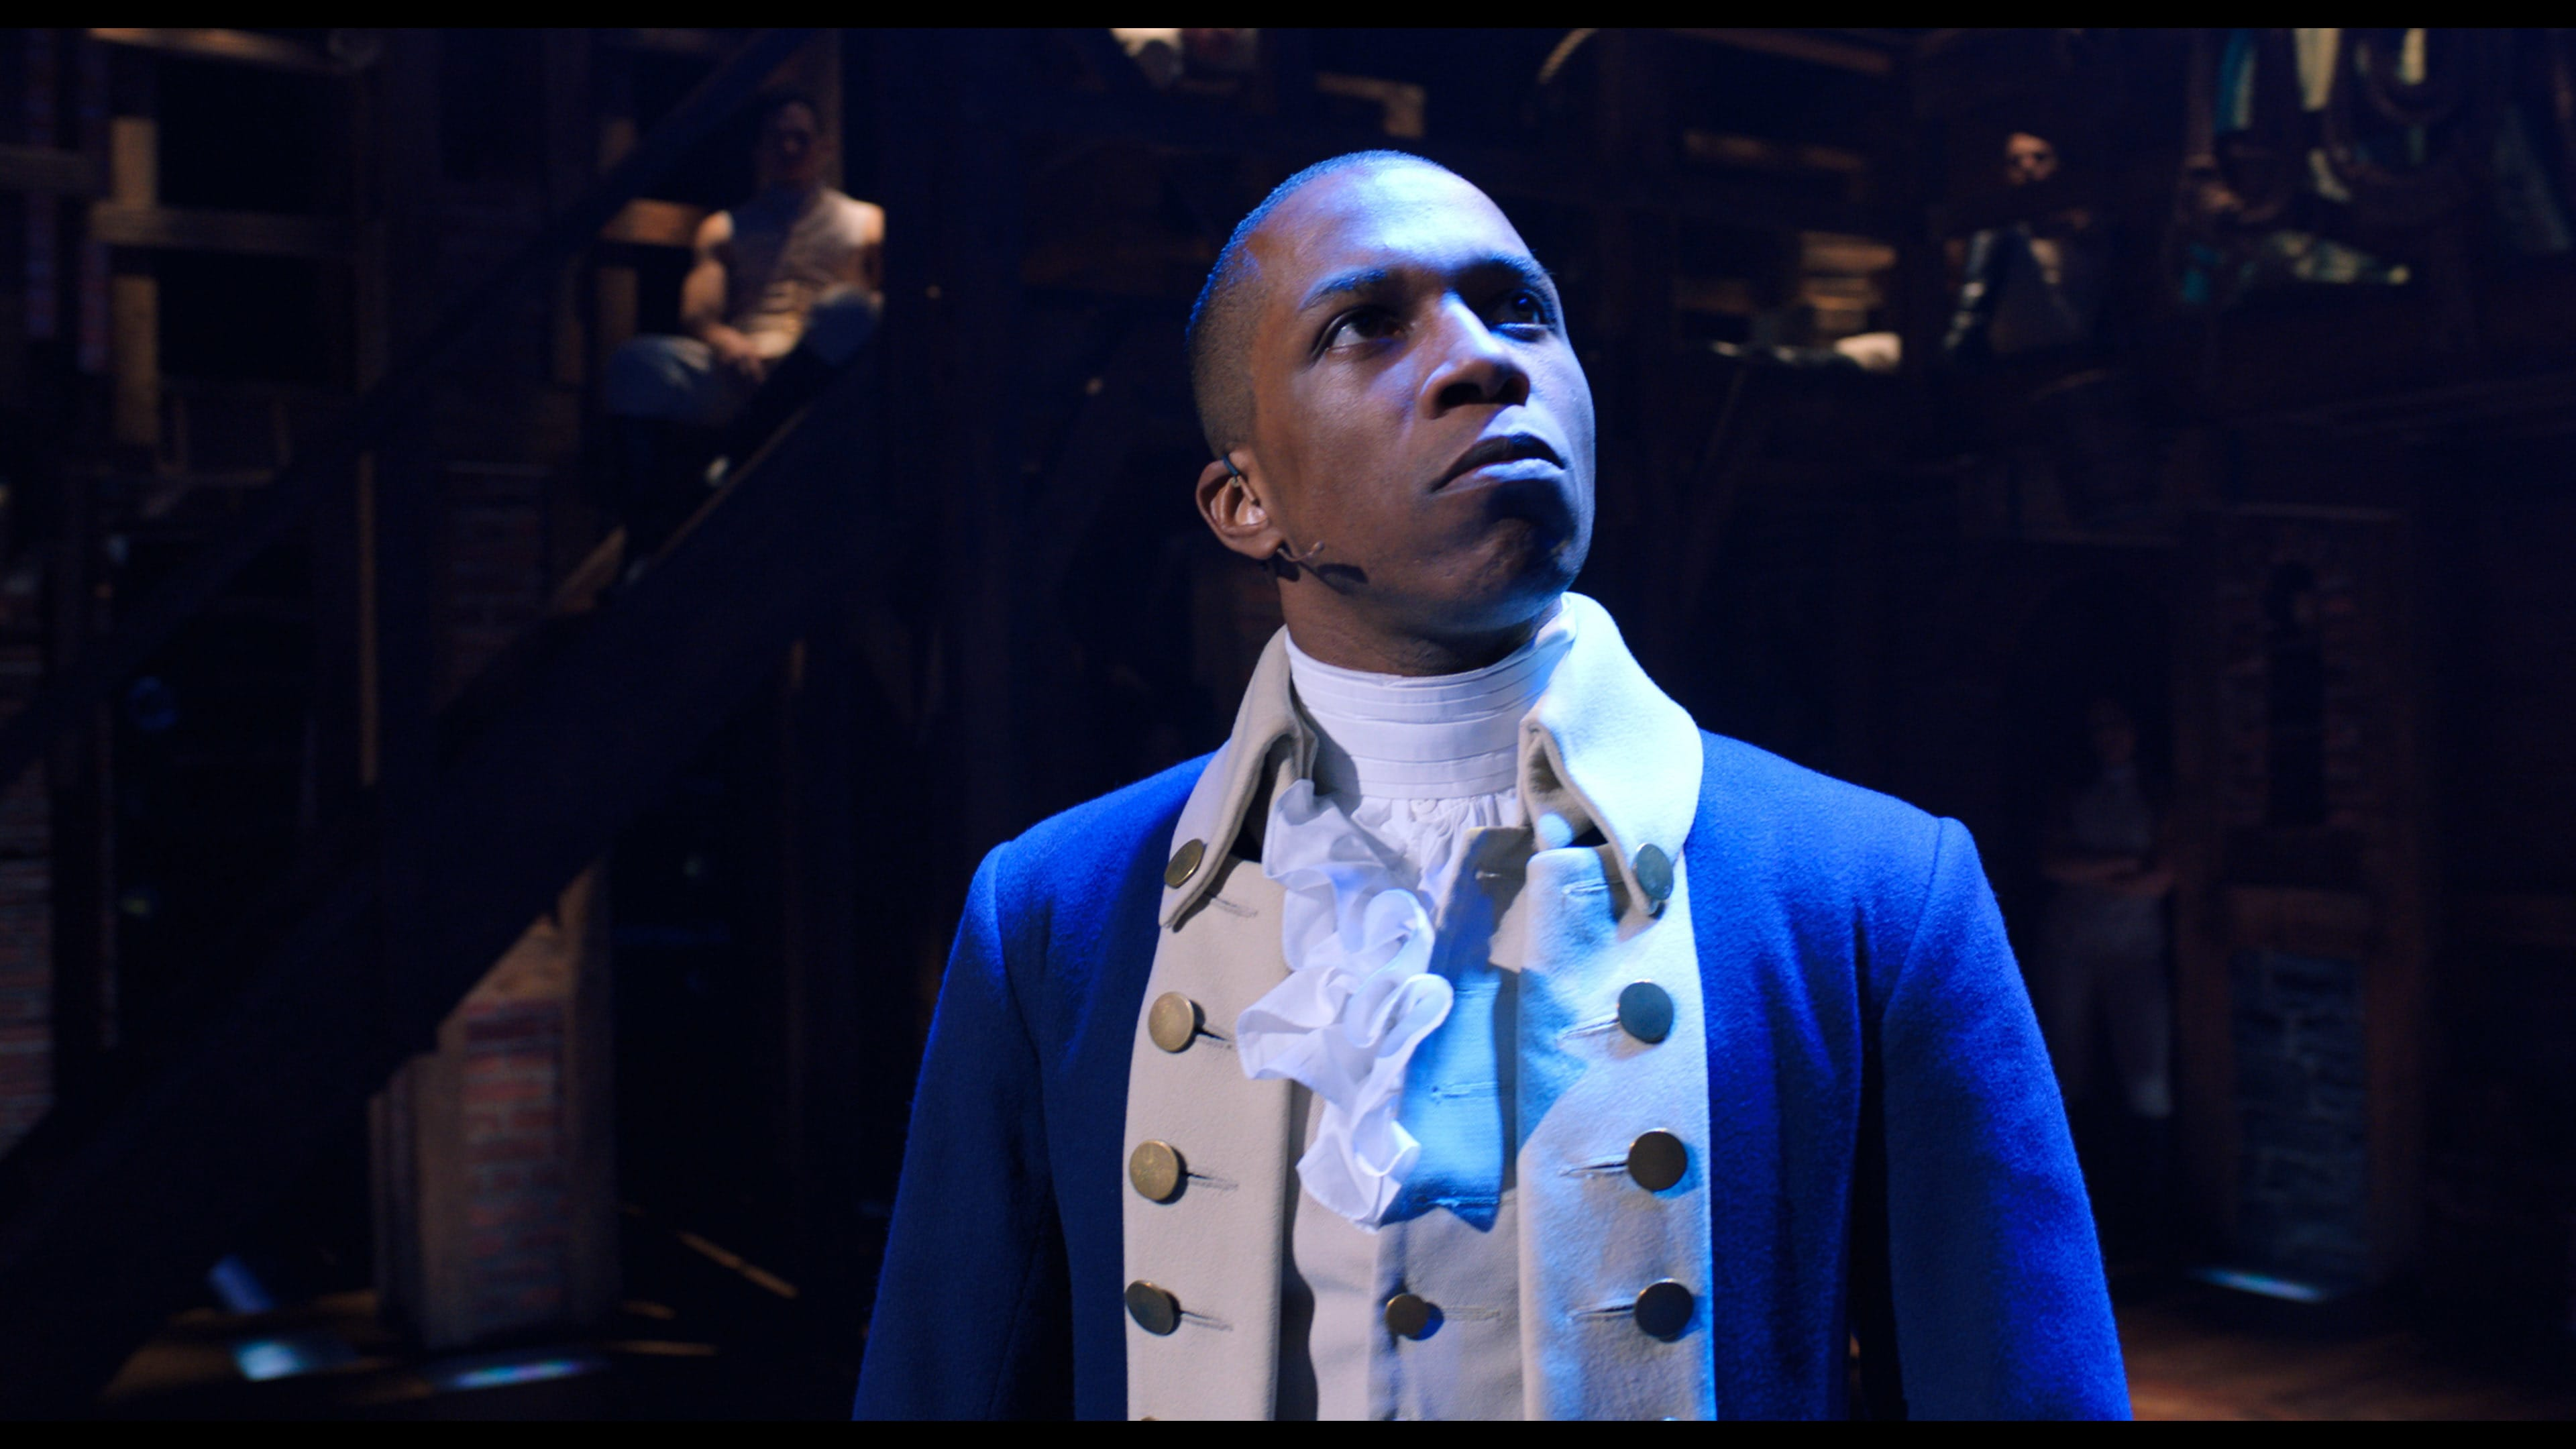 Aaron Burr from Hamilton